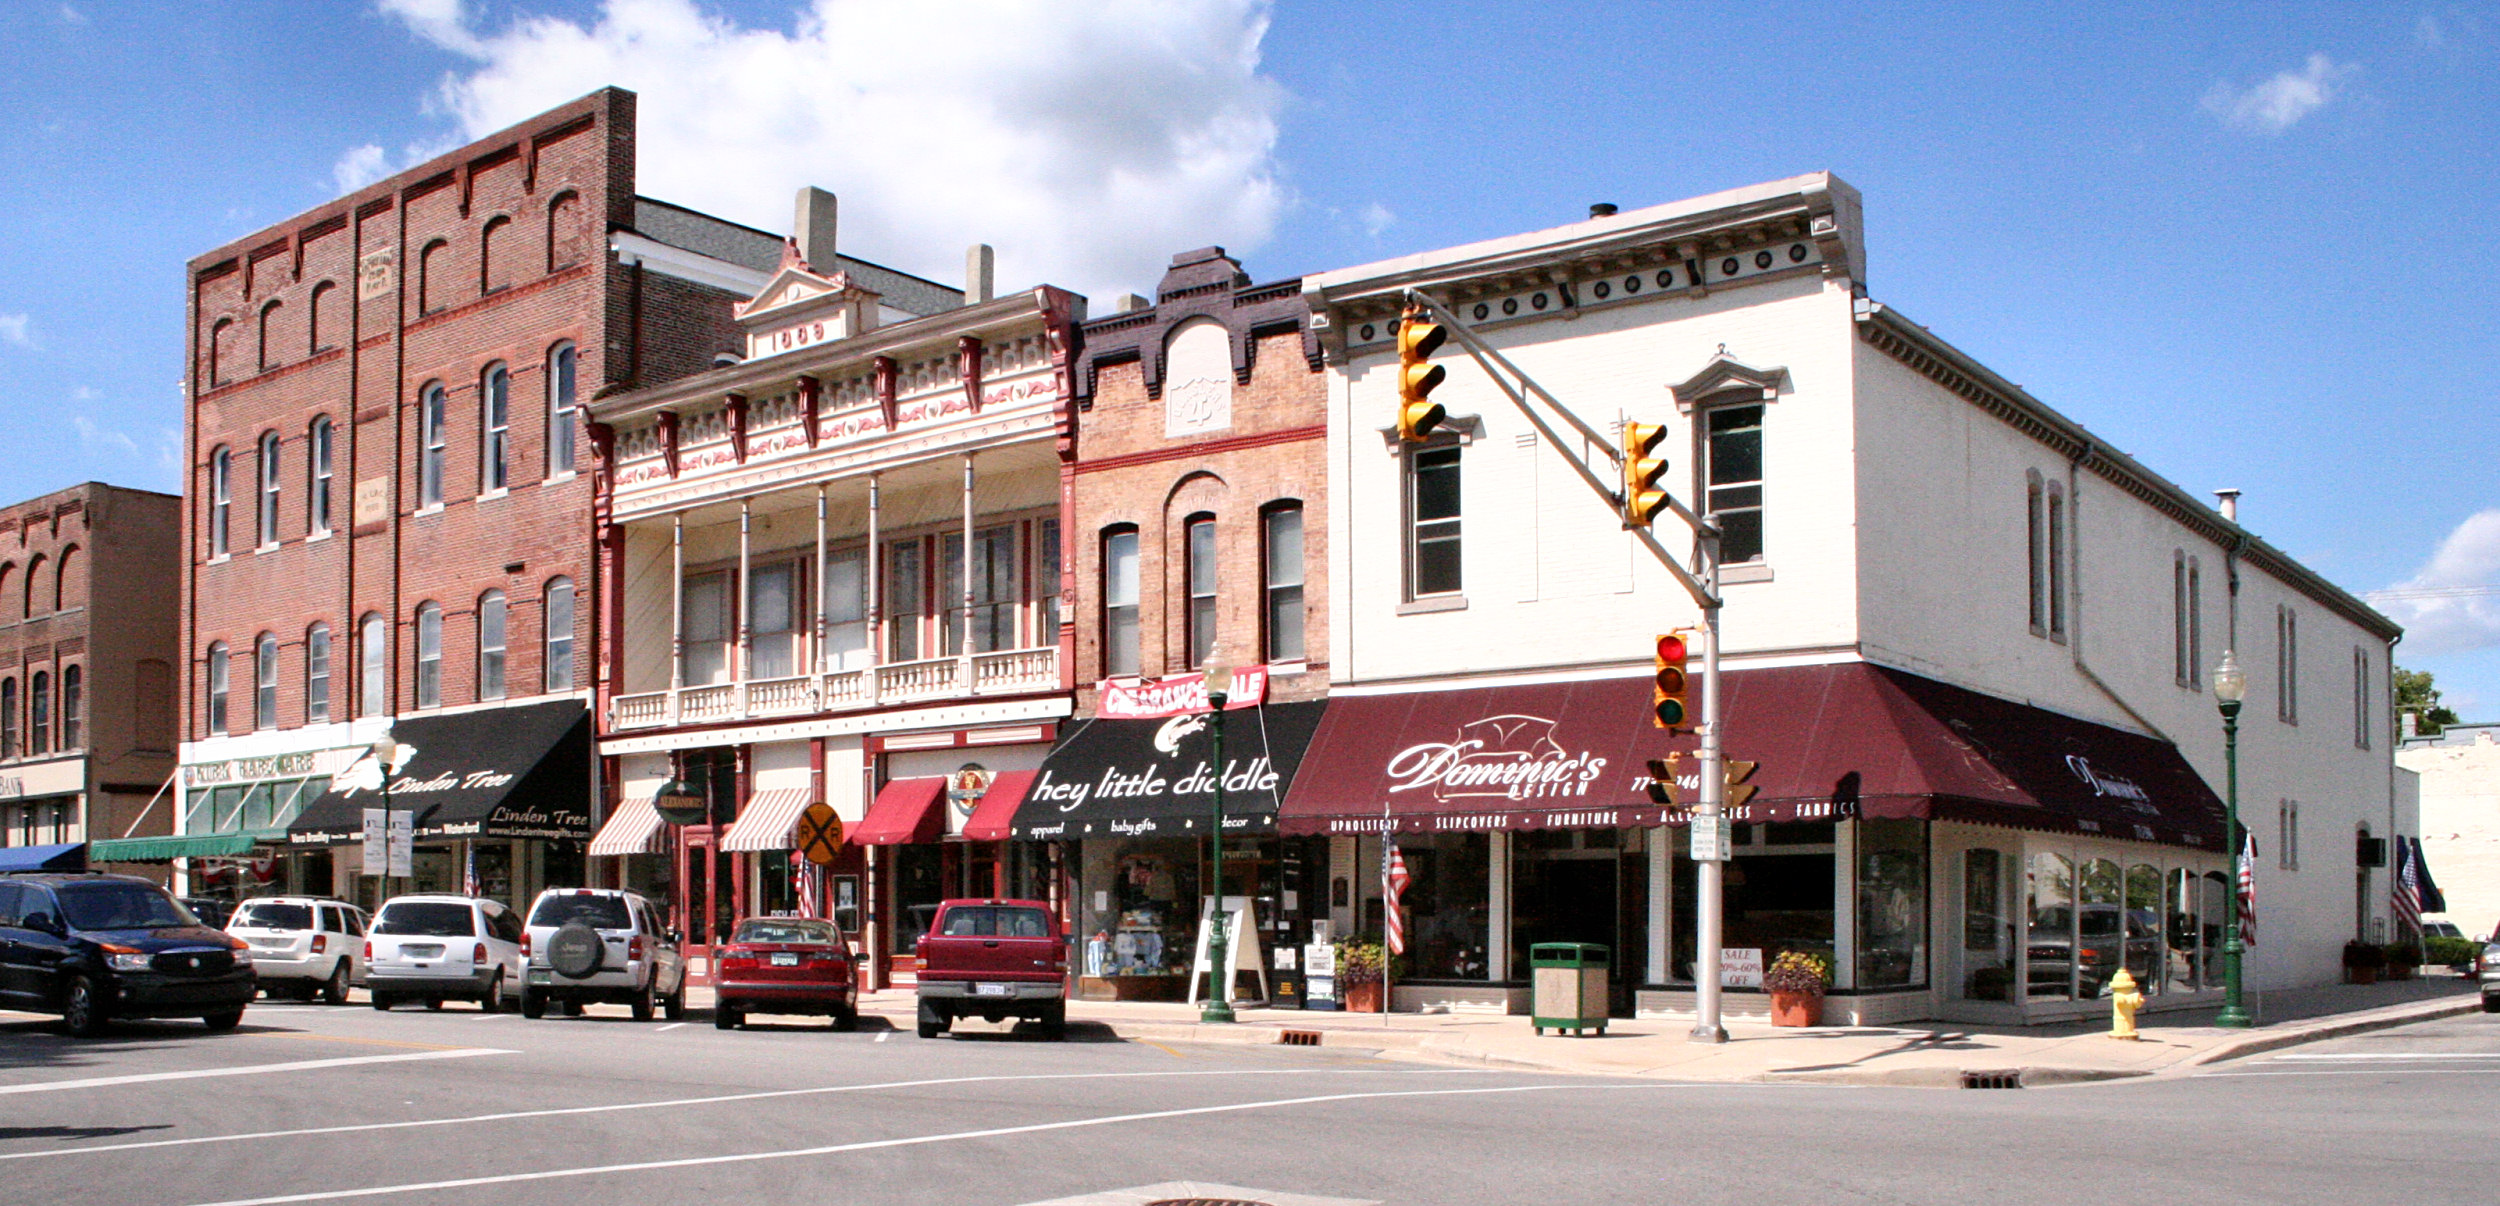 Noblesville Commercial Historic District Wikipedia